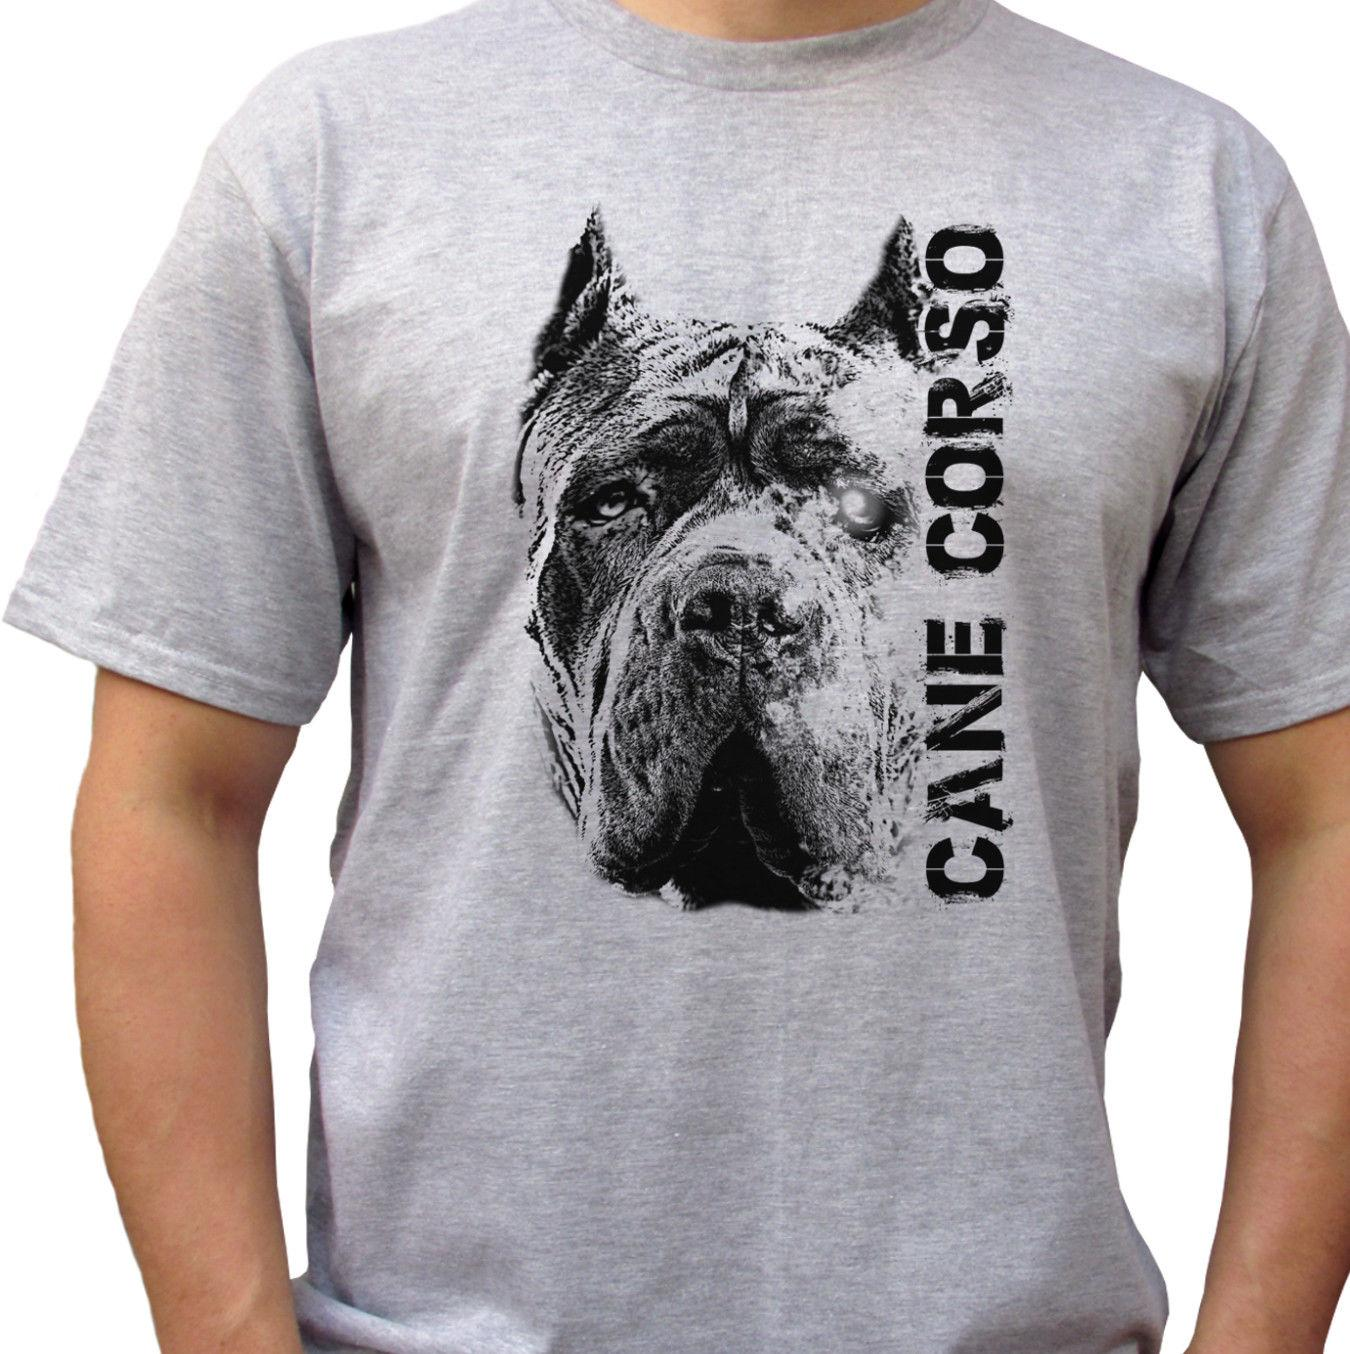 Compre Cane Corso Head Camiseta Gris Top Tee Dog Design Mens Tamaños